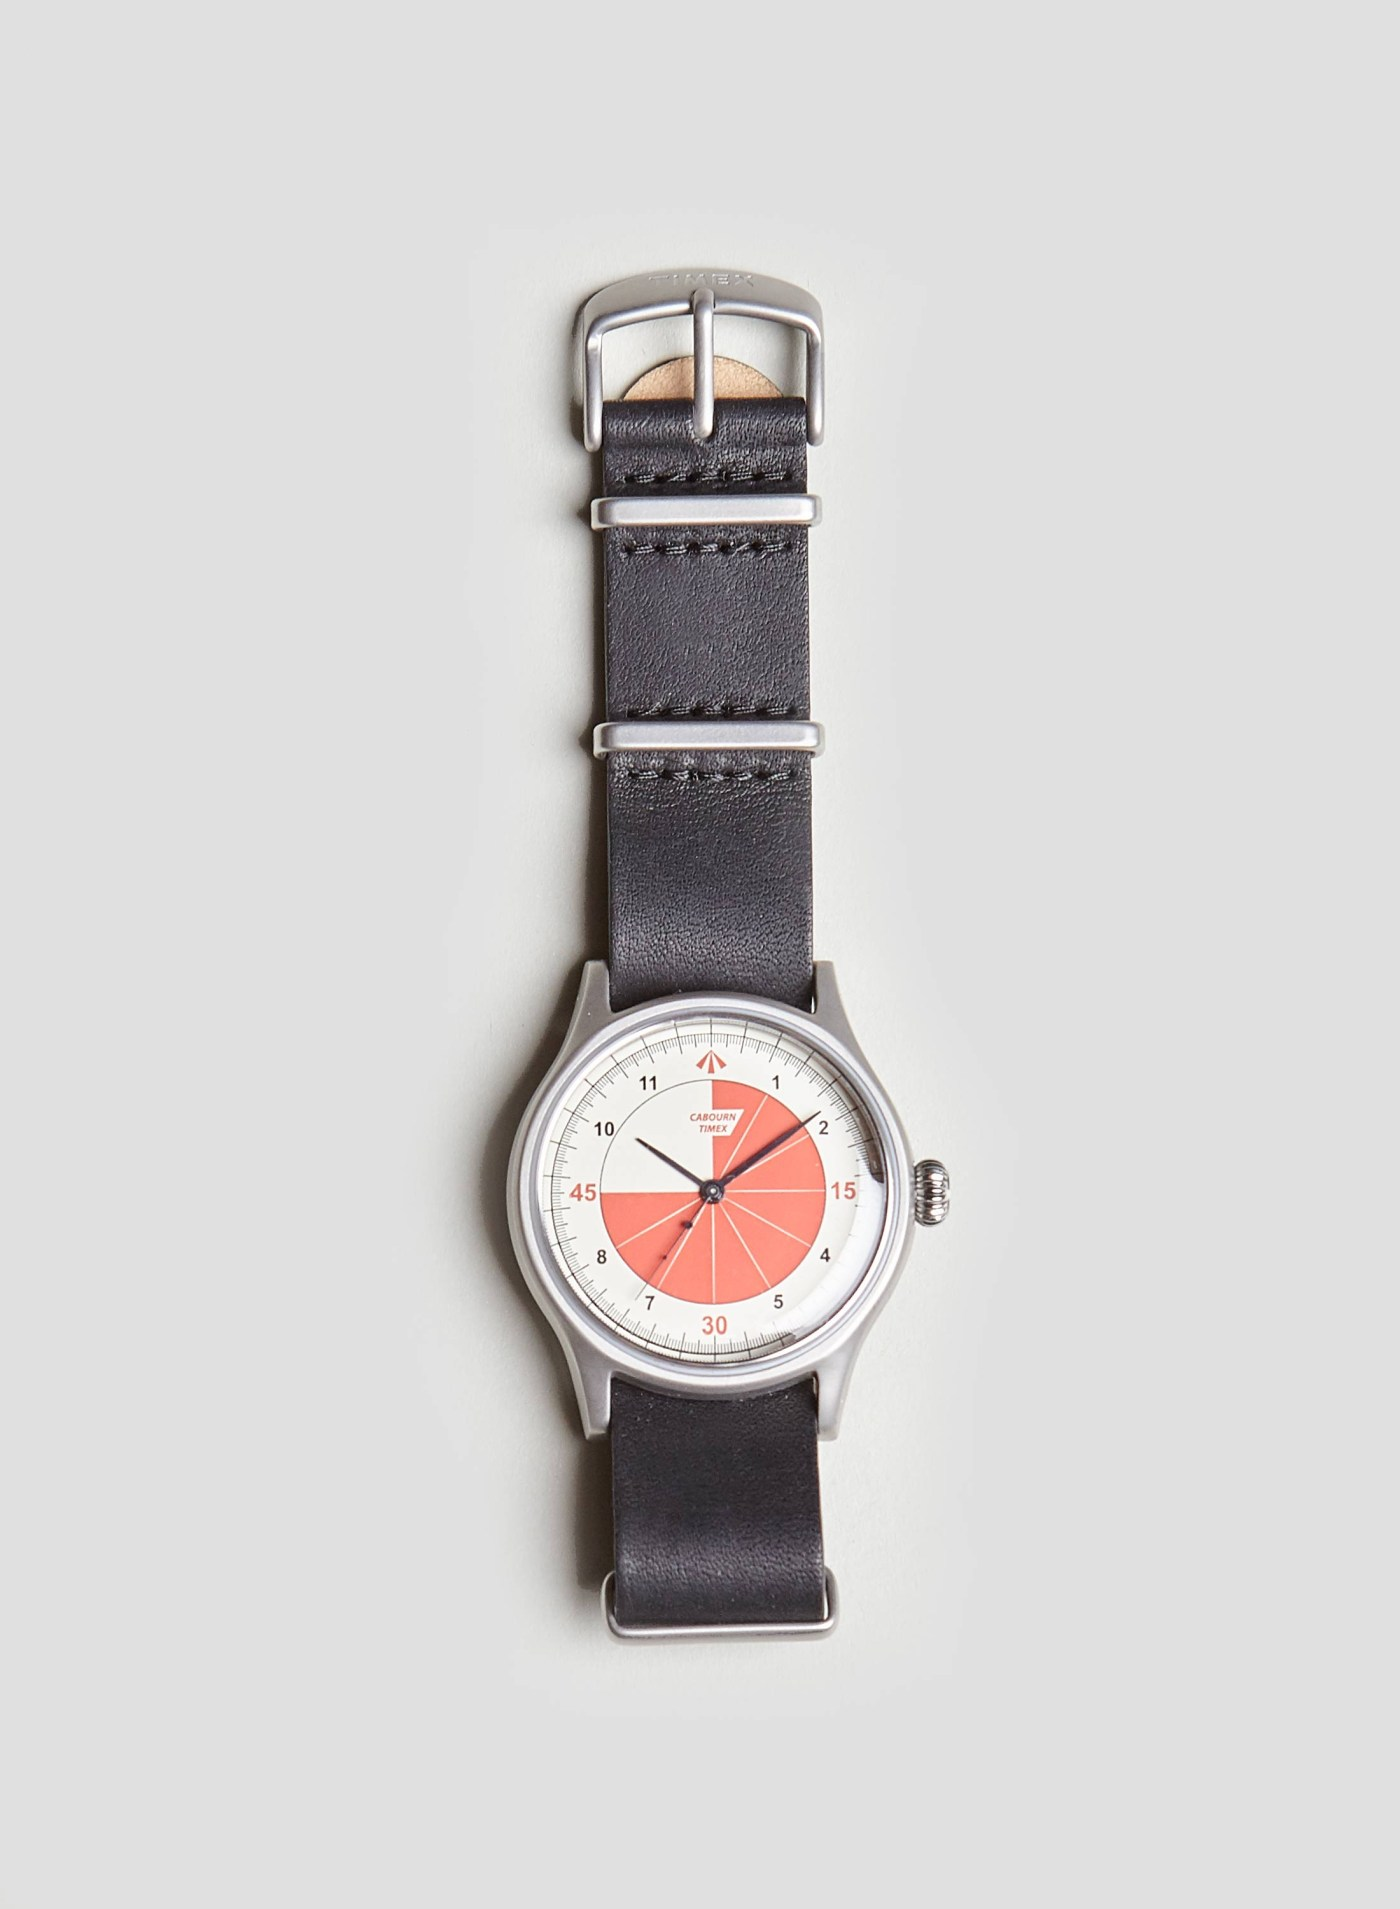 Timex Nigel Cabourn 2019 collaboration